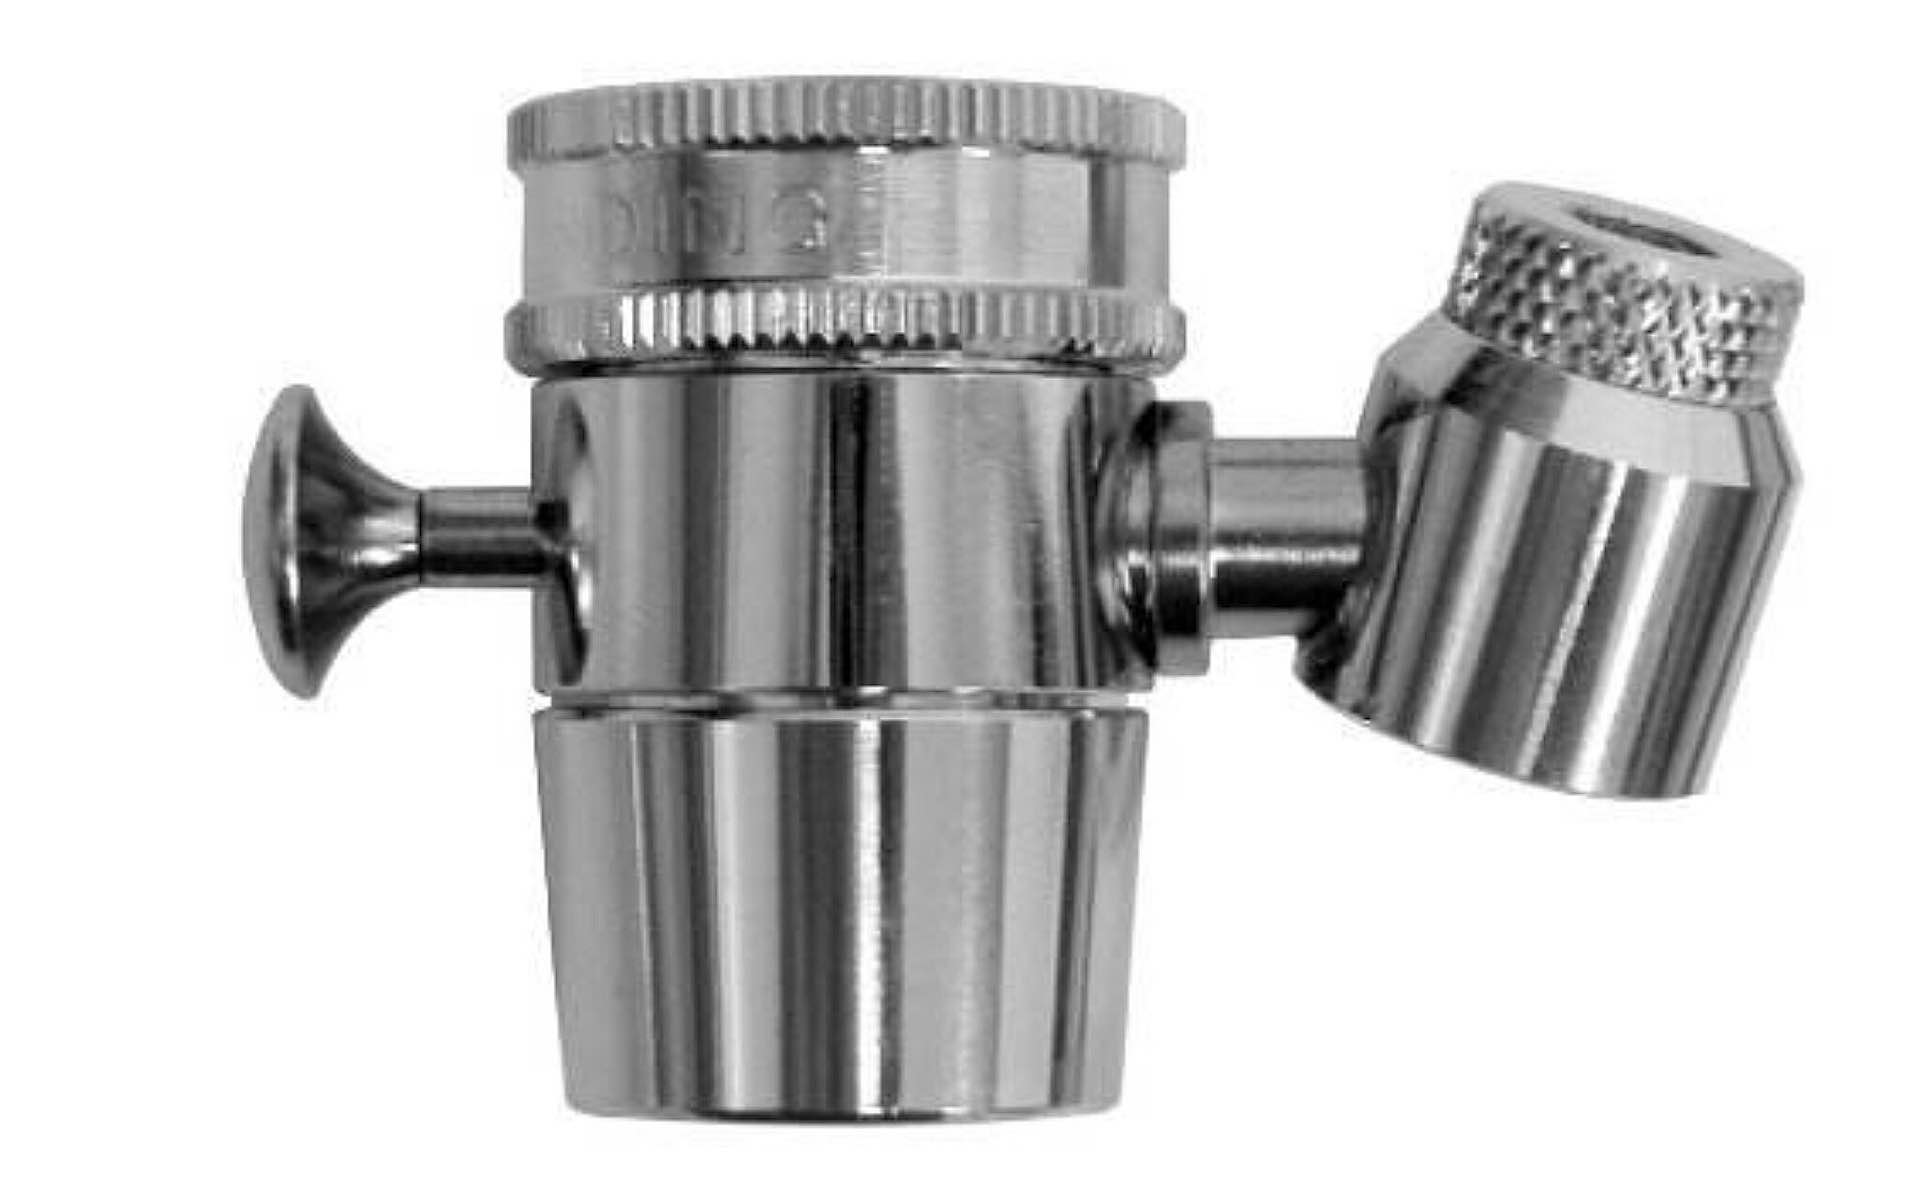 Kwik Sip Water Fountain Faucet Attachment — Tools and Toys